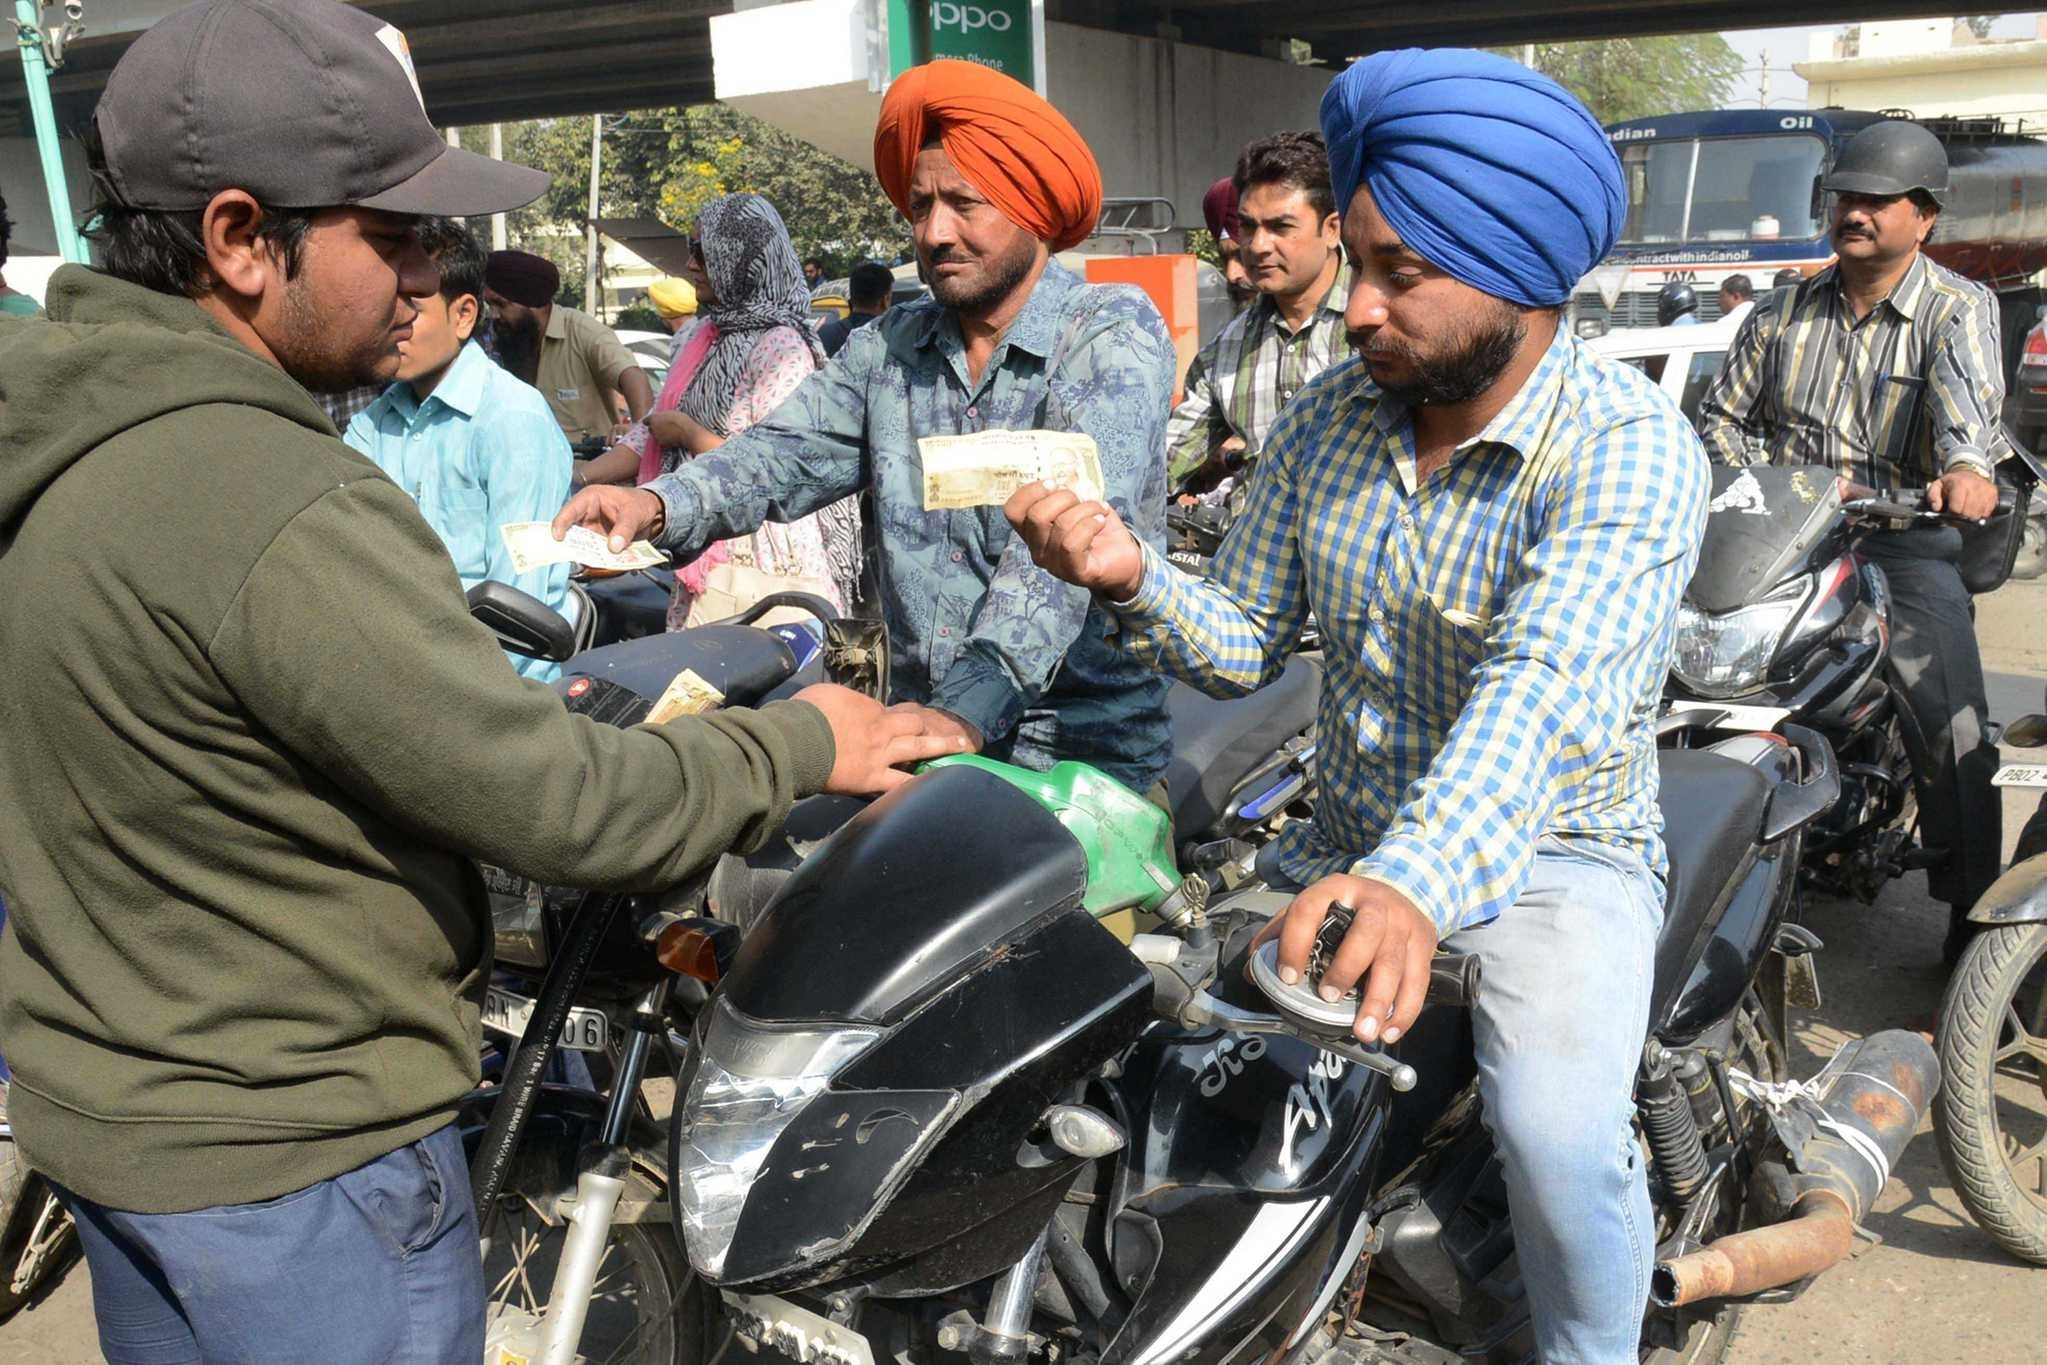 Indian motorists pay with 500 rupee notes at a fuel station in Amritsar. ATMs were closed and many are likely to remain shut today as banks prepare for the flood of people seeking to exchange larger banknotes.